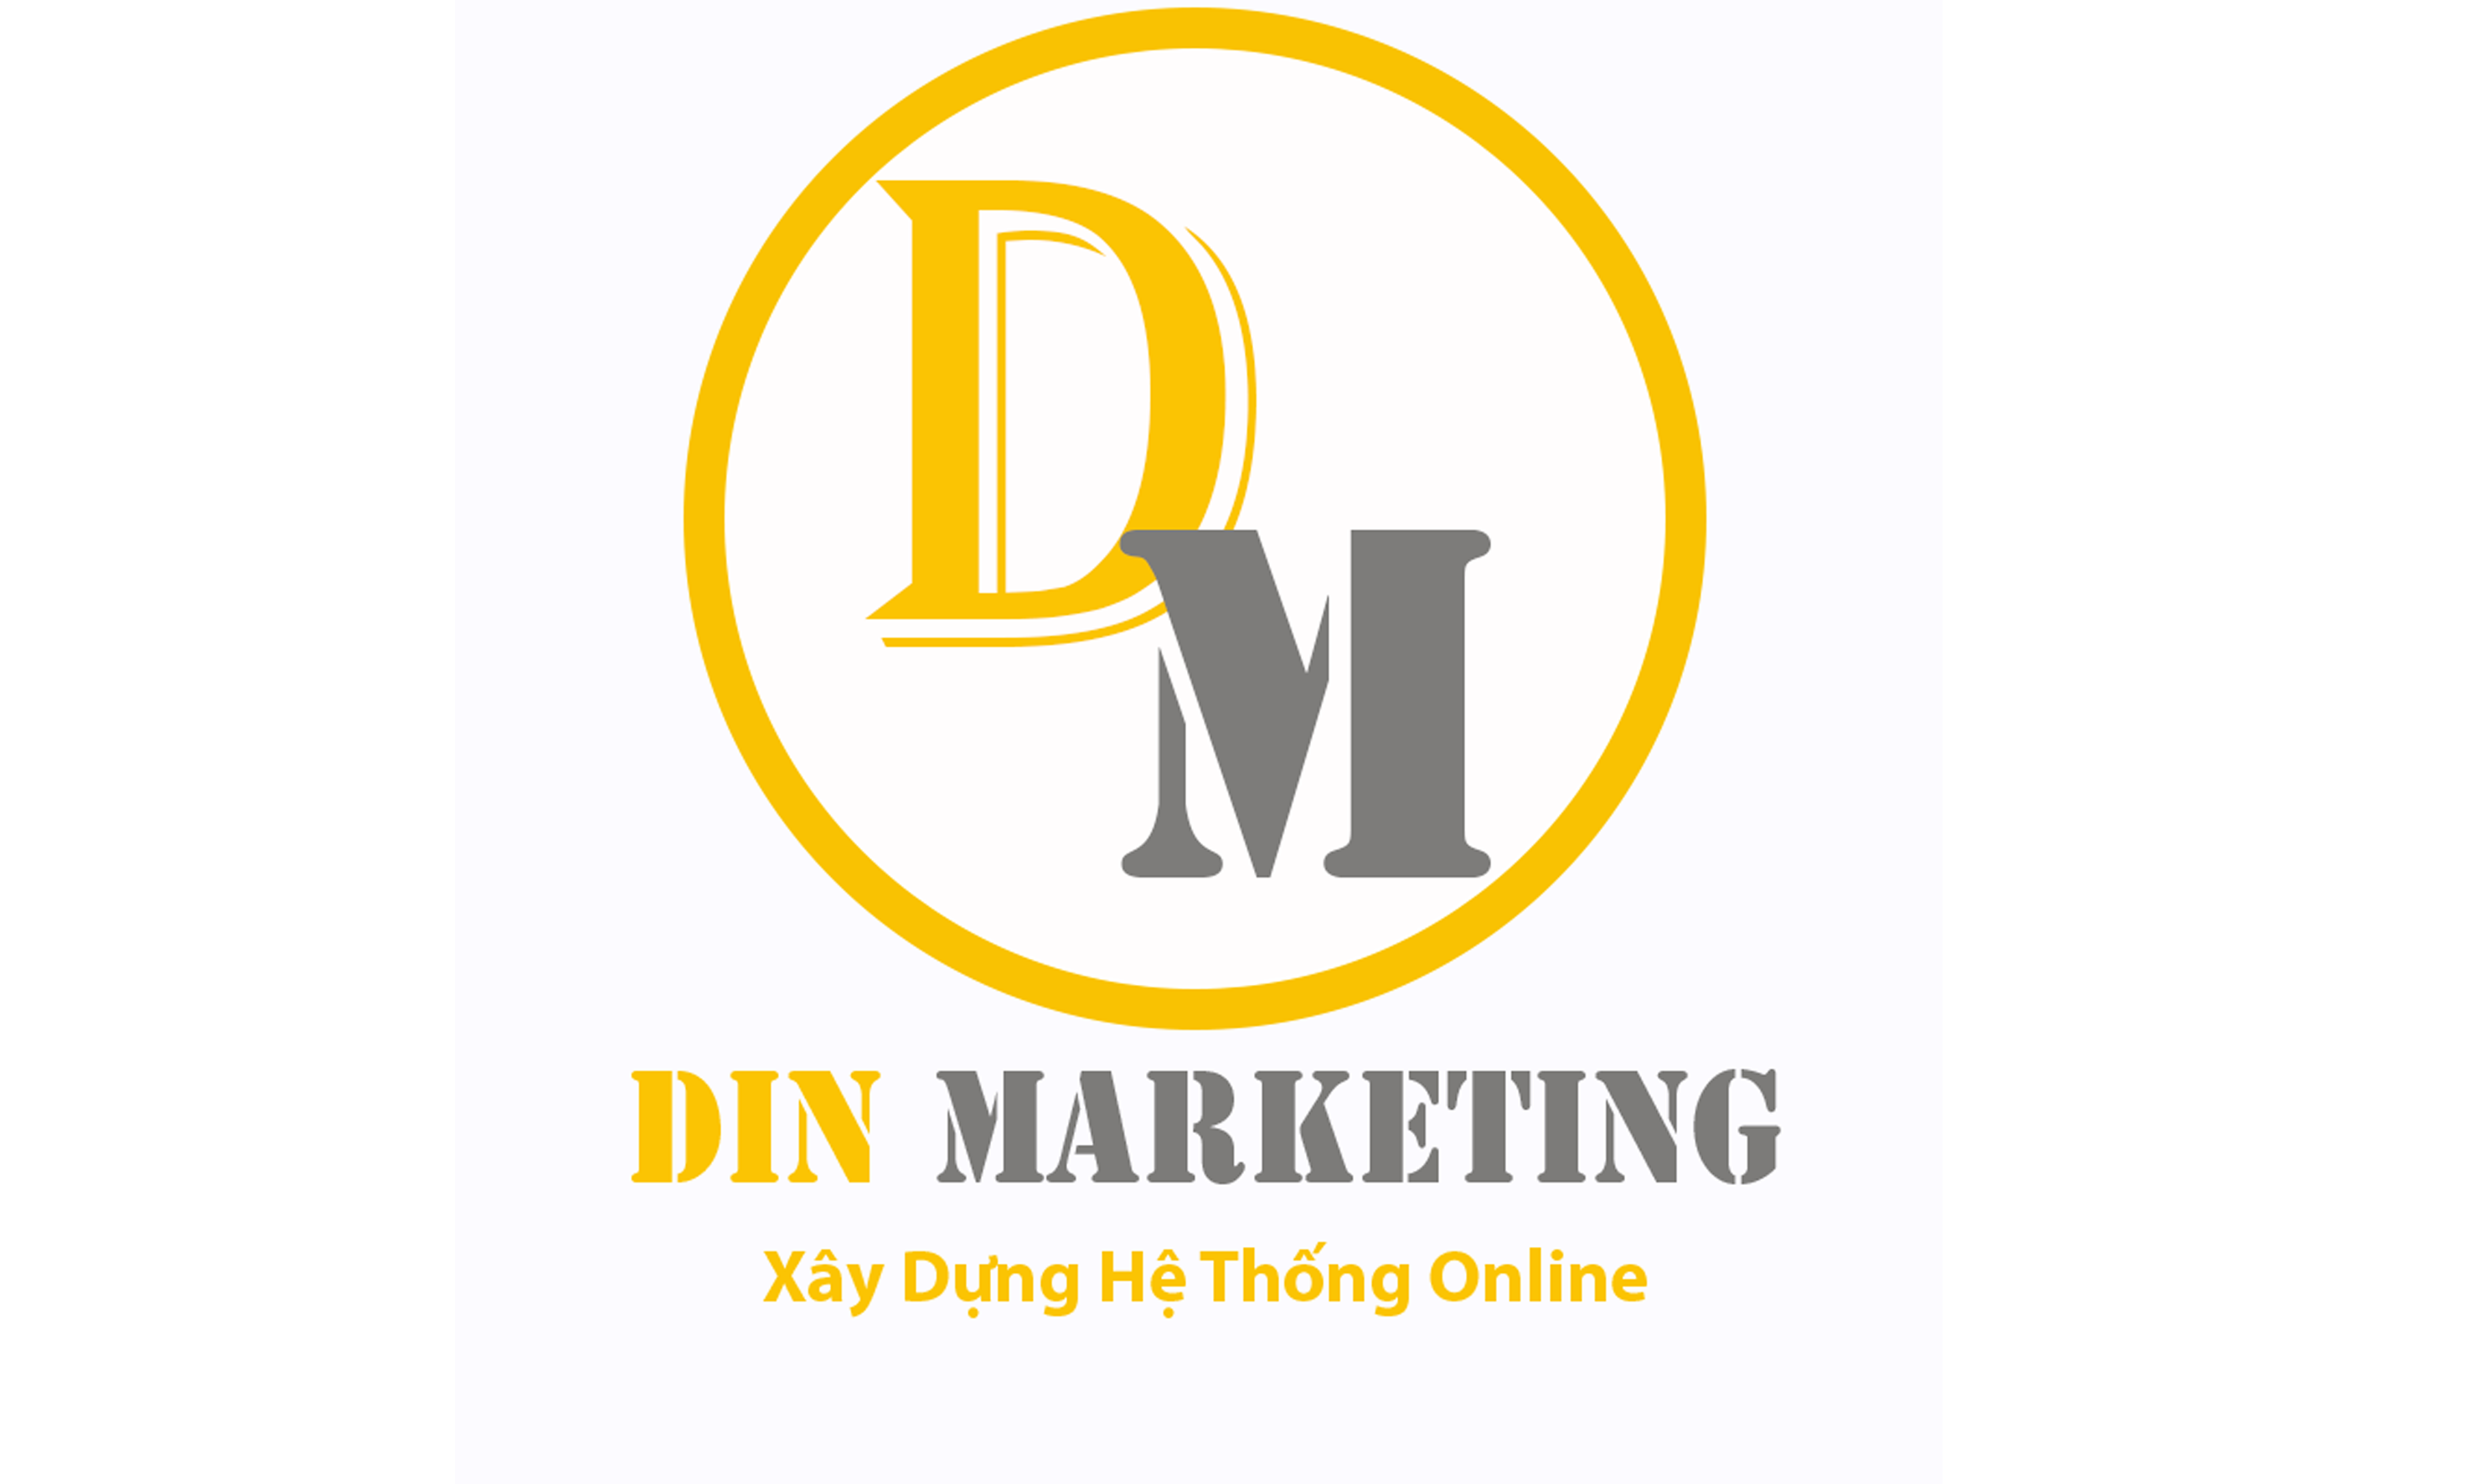 DINMARKETING